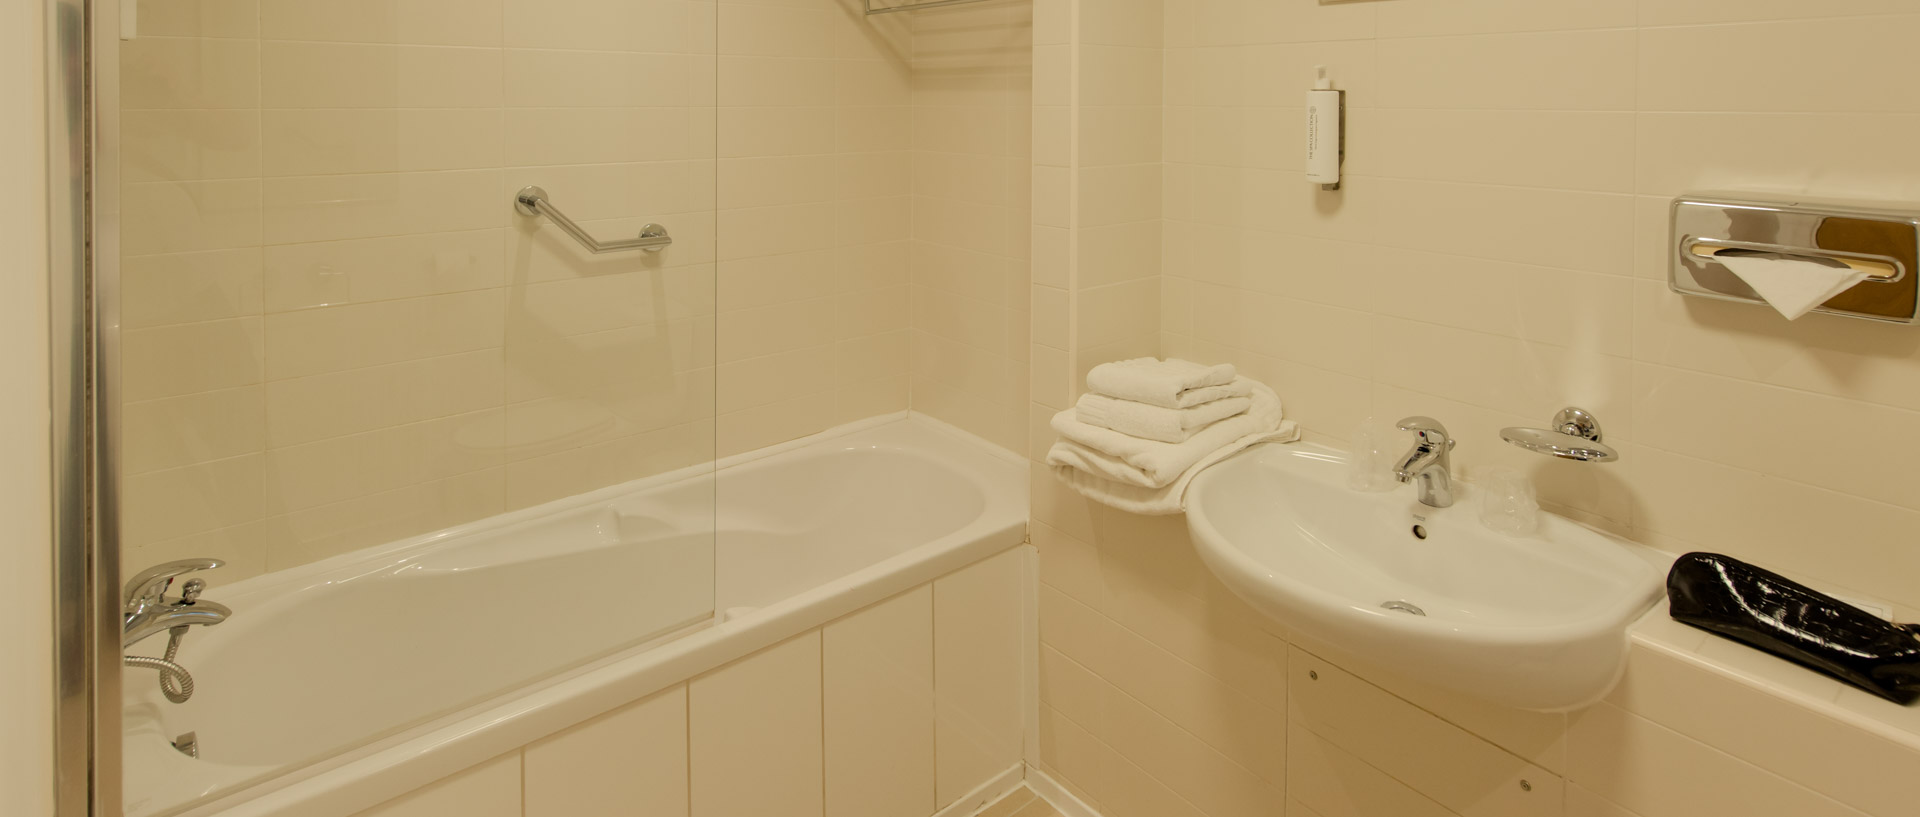 Bright spacious bathroom in PREMIER SUITES Newcastle serviced apartments